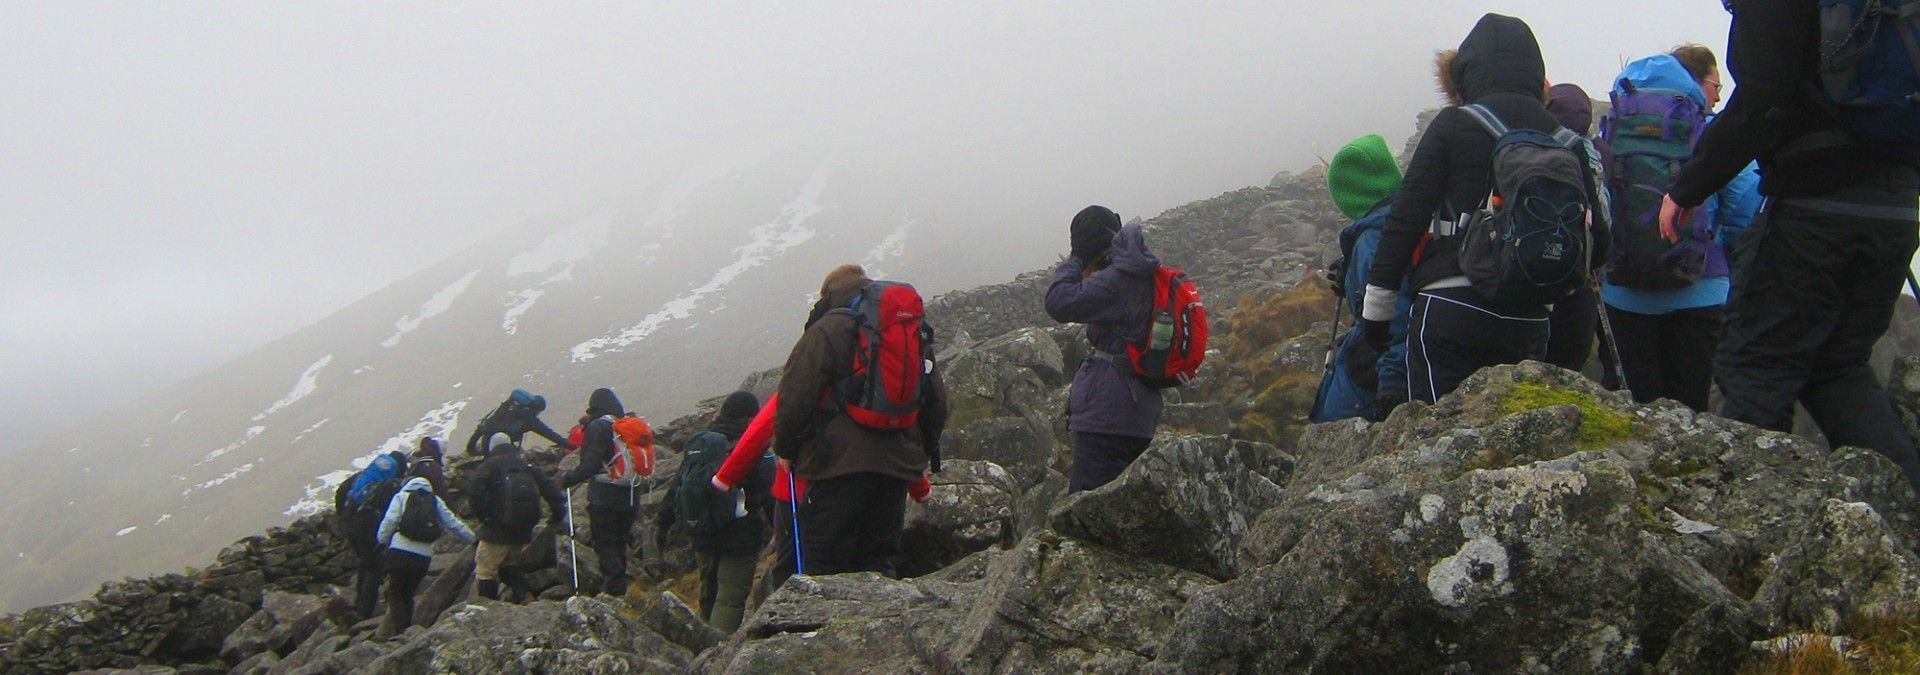 Rocky_descent_of_Mount_Snowdon.jpg